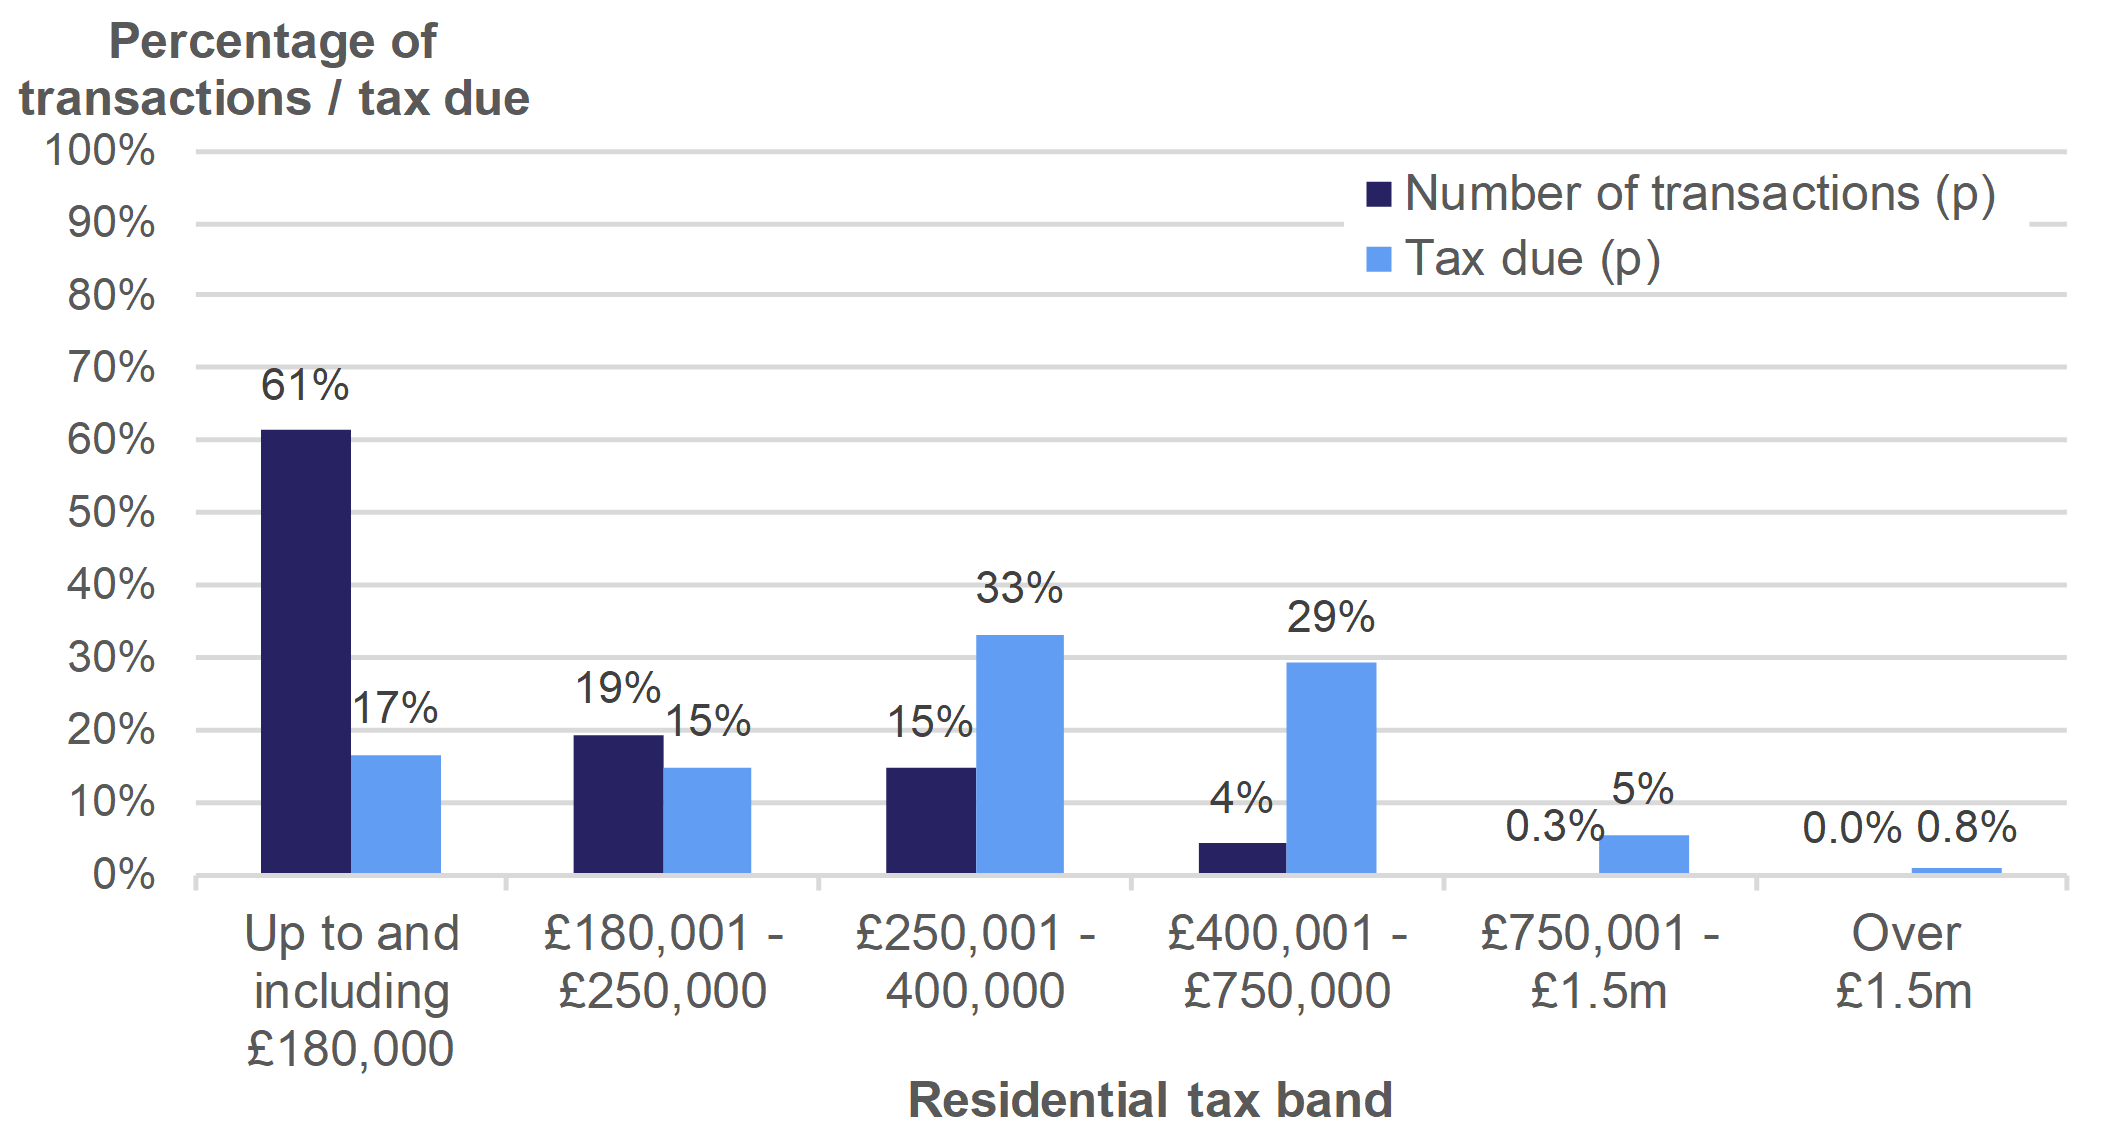 Figure 3.3 shows the number of residential transactions and amount of tax due, by residential tax band. Data is presented as the percentage of transactions or tax due and relates to transactions effective in July to September 2019.